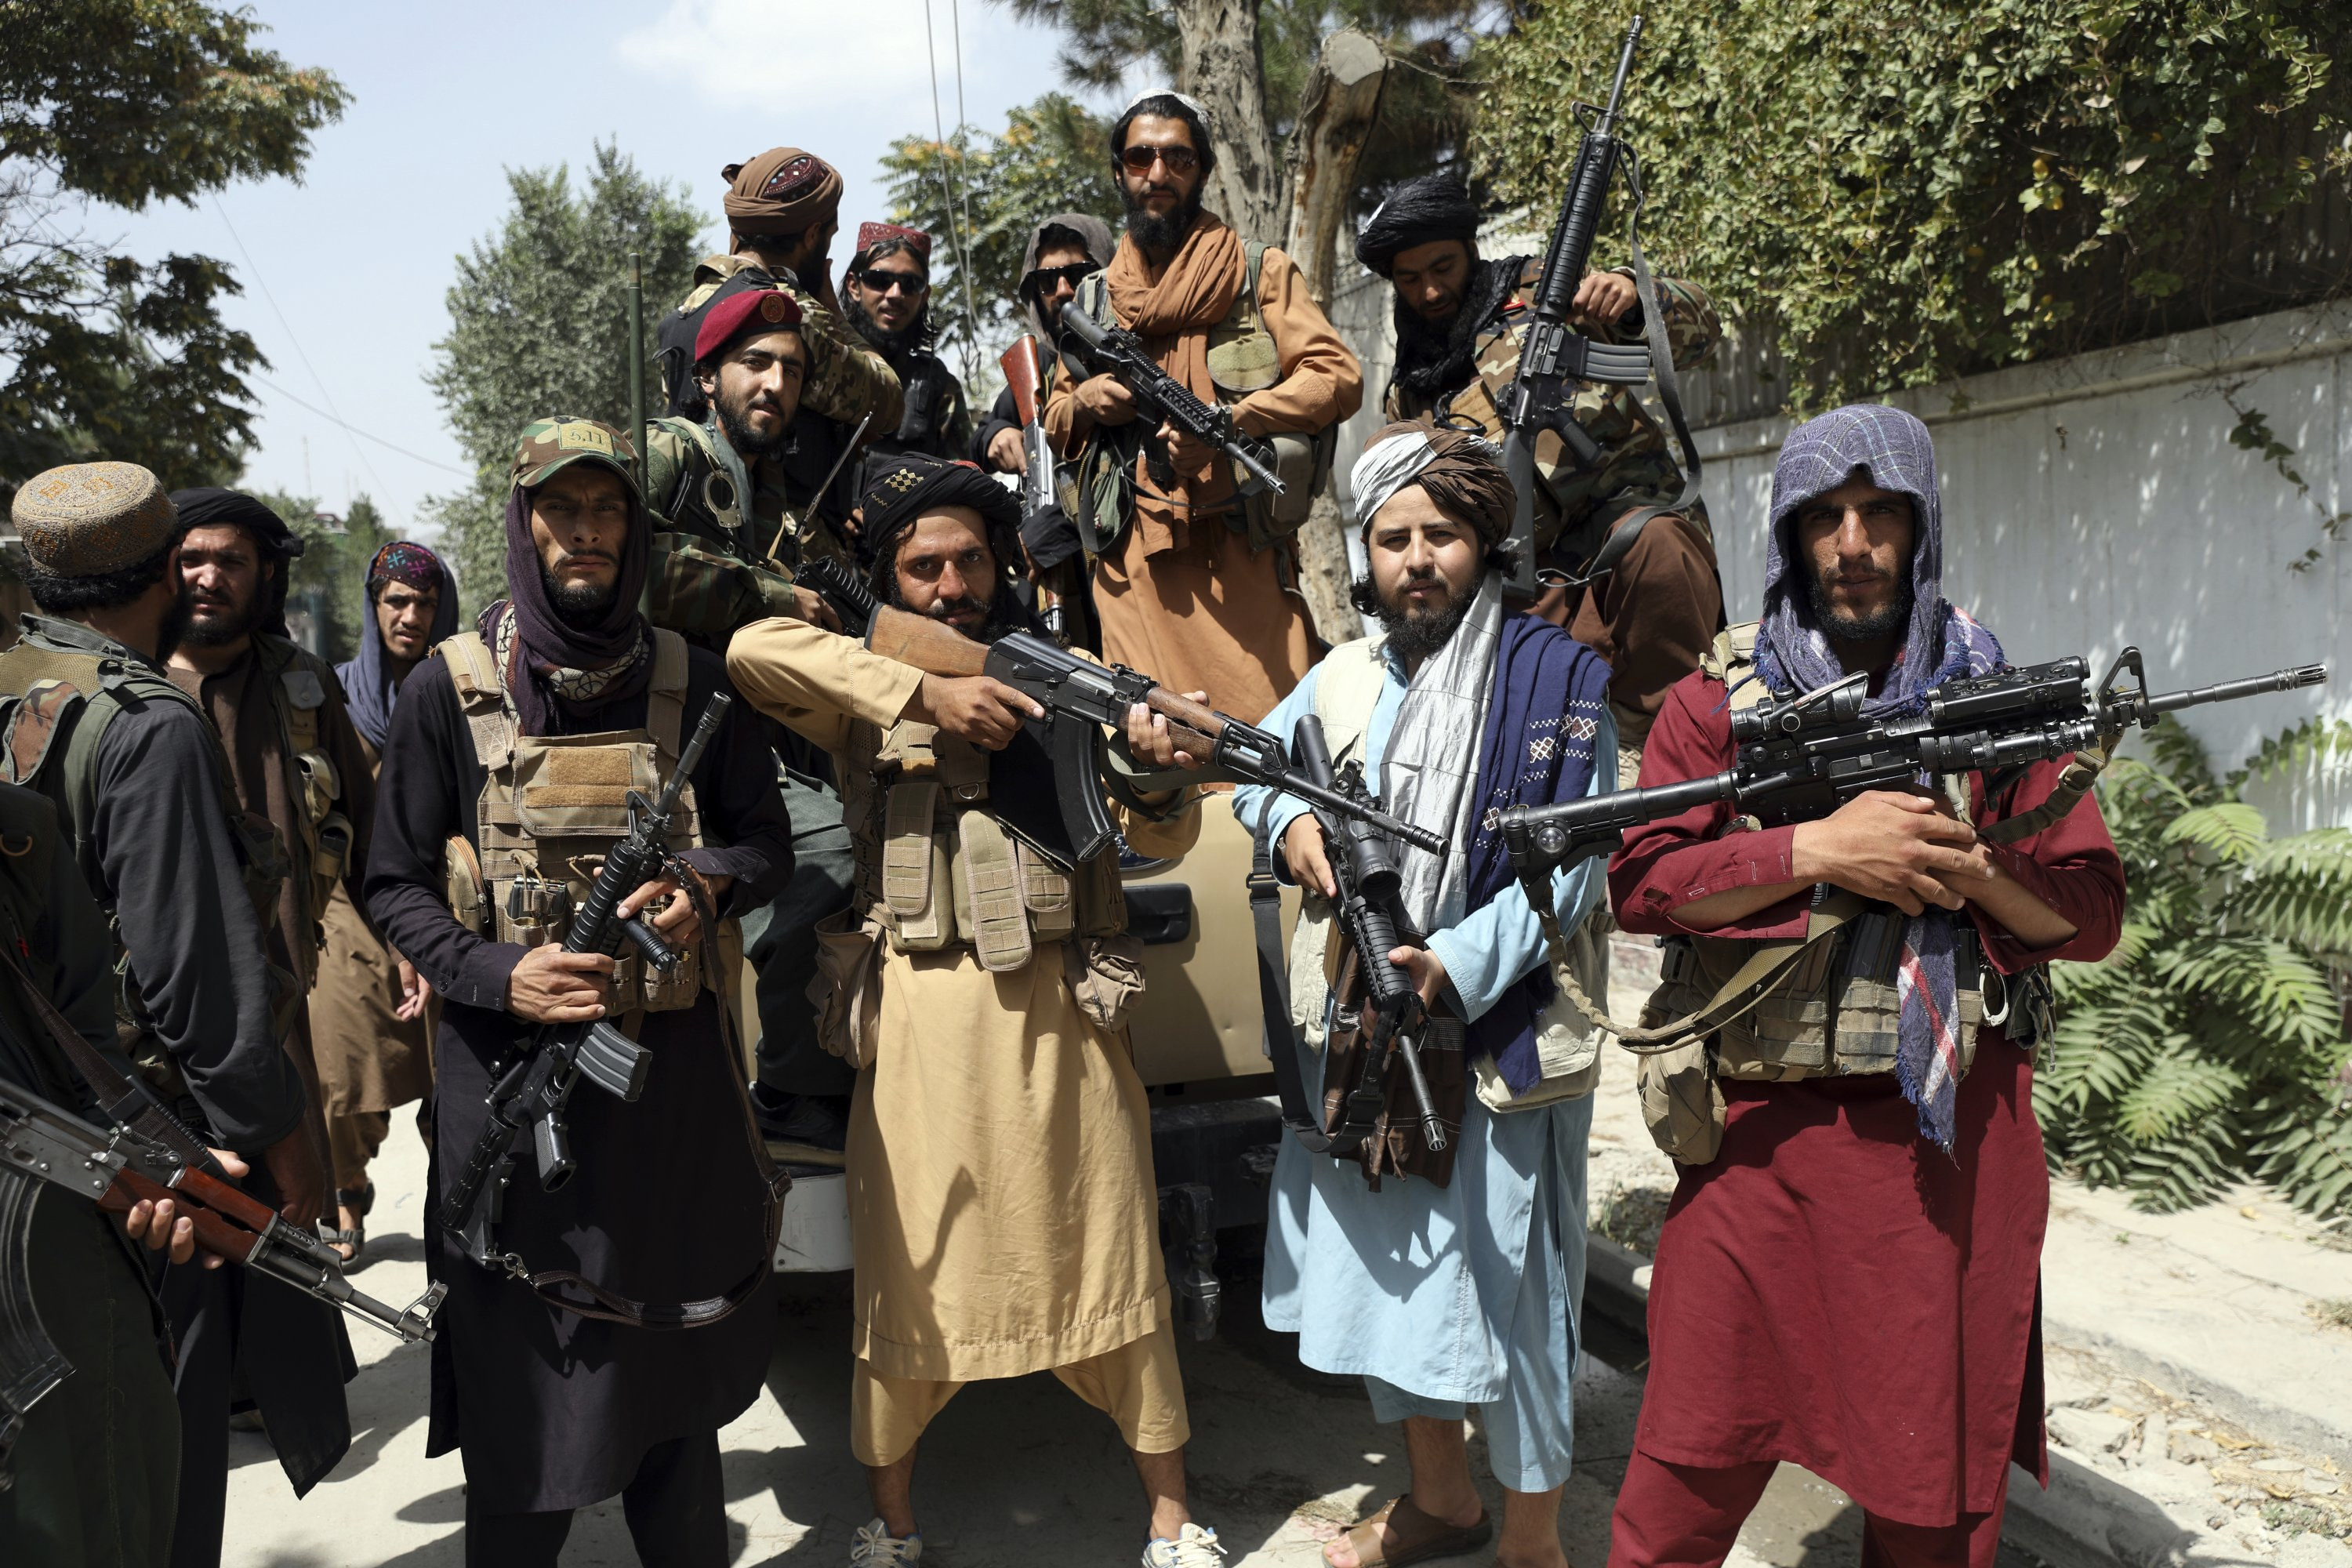 Taliban fighters pose for a photograph in Kabul, Afghanistan, Aug. 19, 2021. (AP Photo)